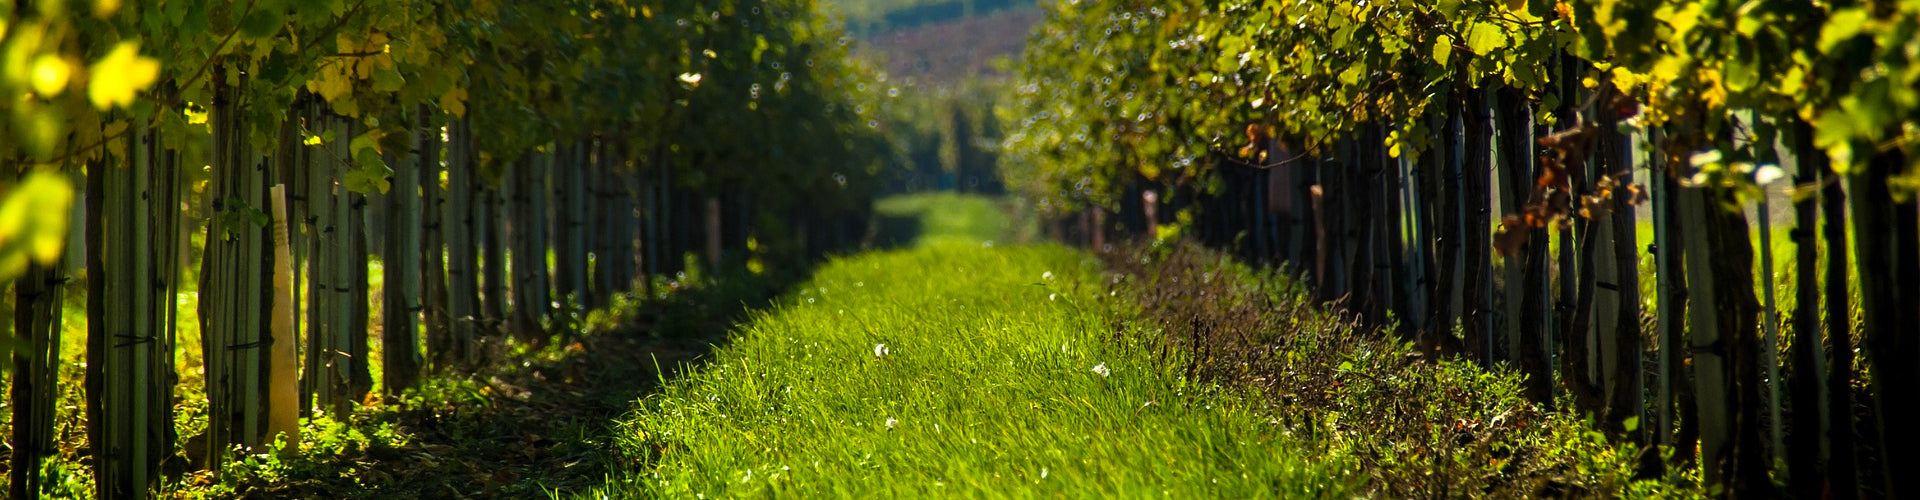 Healthy organic vineyard with grass and crop cover